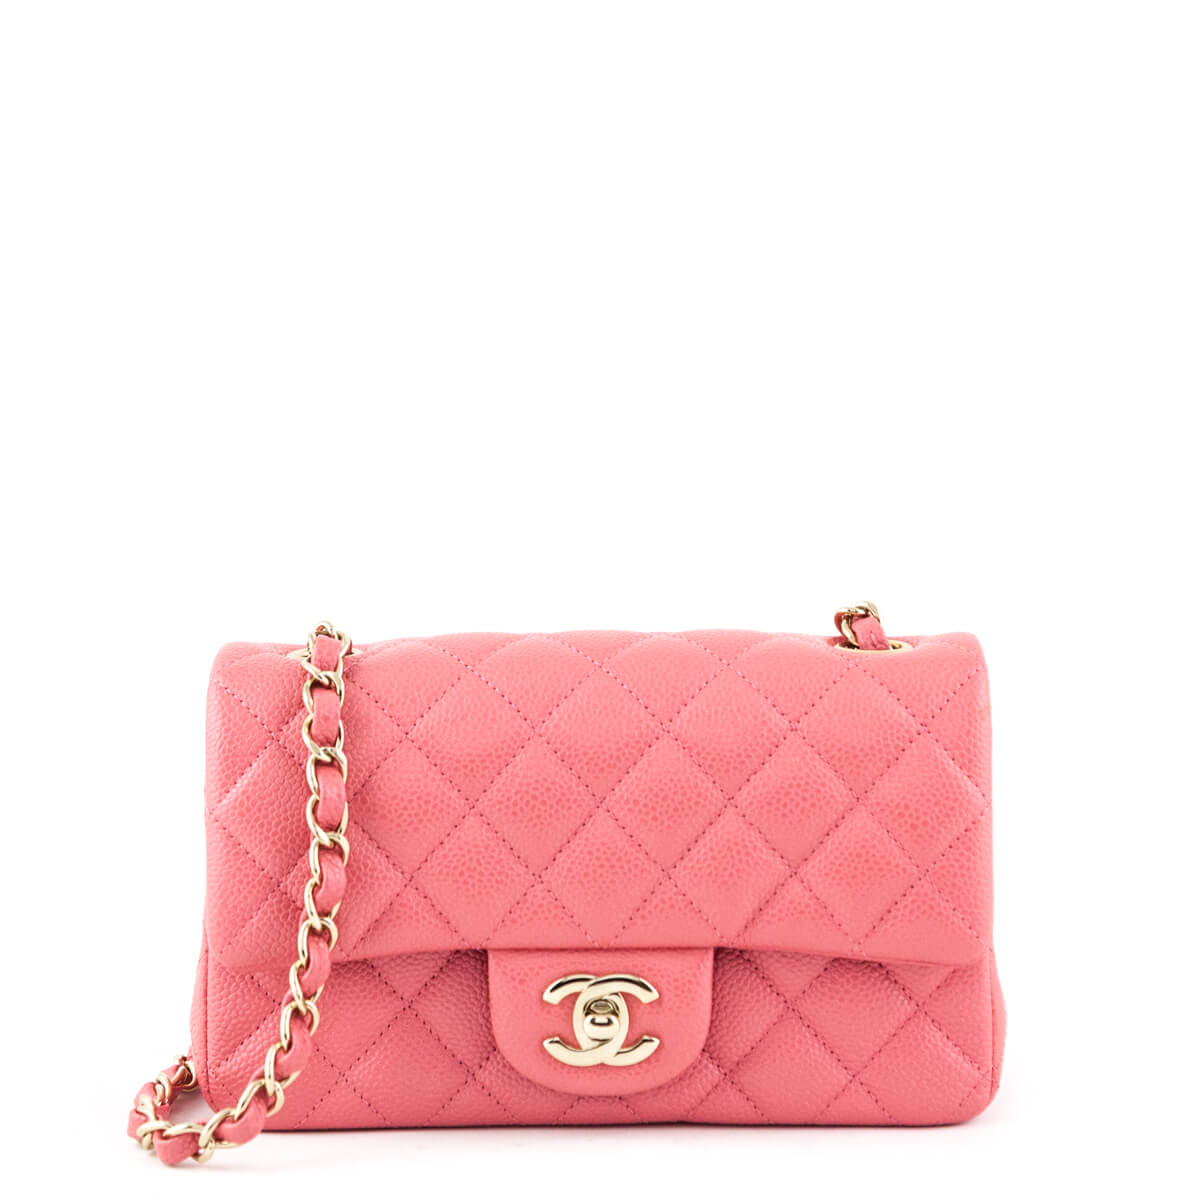 b21689f09dfd Chanel Pink Quilted Caviar Mini Flap Bag GHW - LOVE that BAG - Preowned  Authentic Designer ...